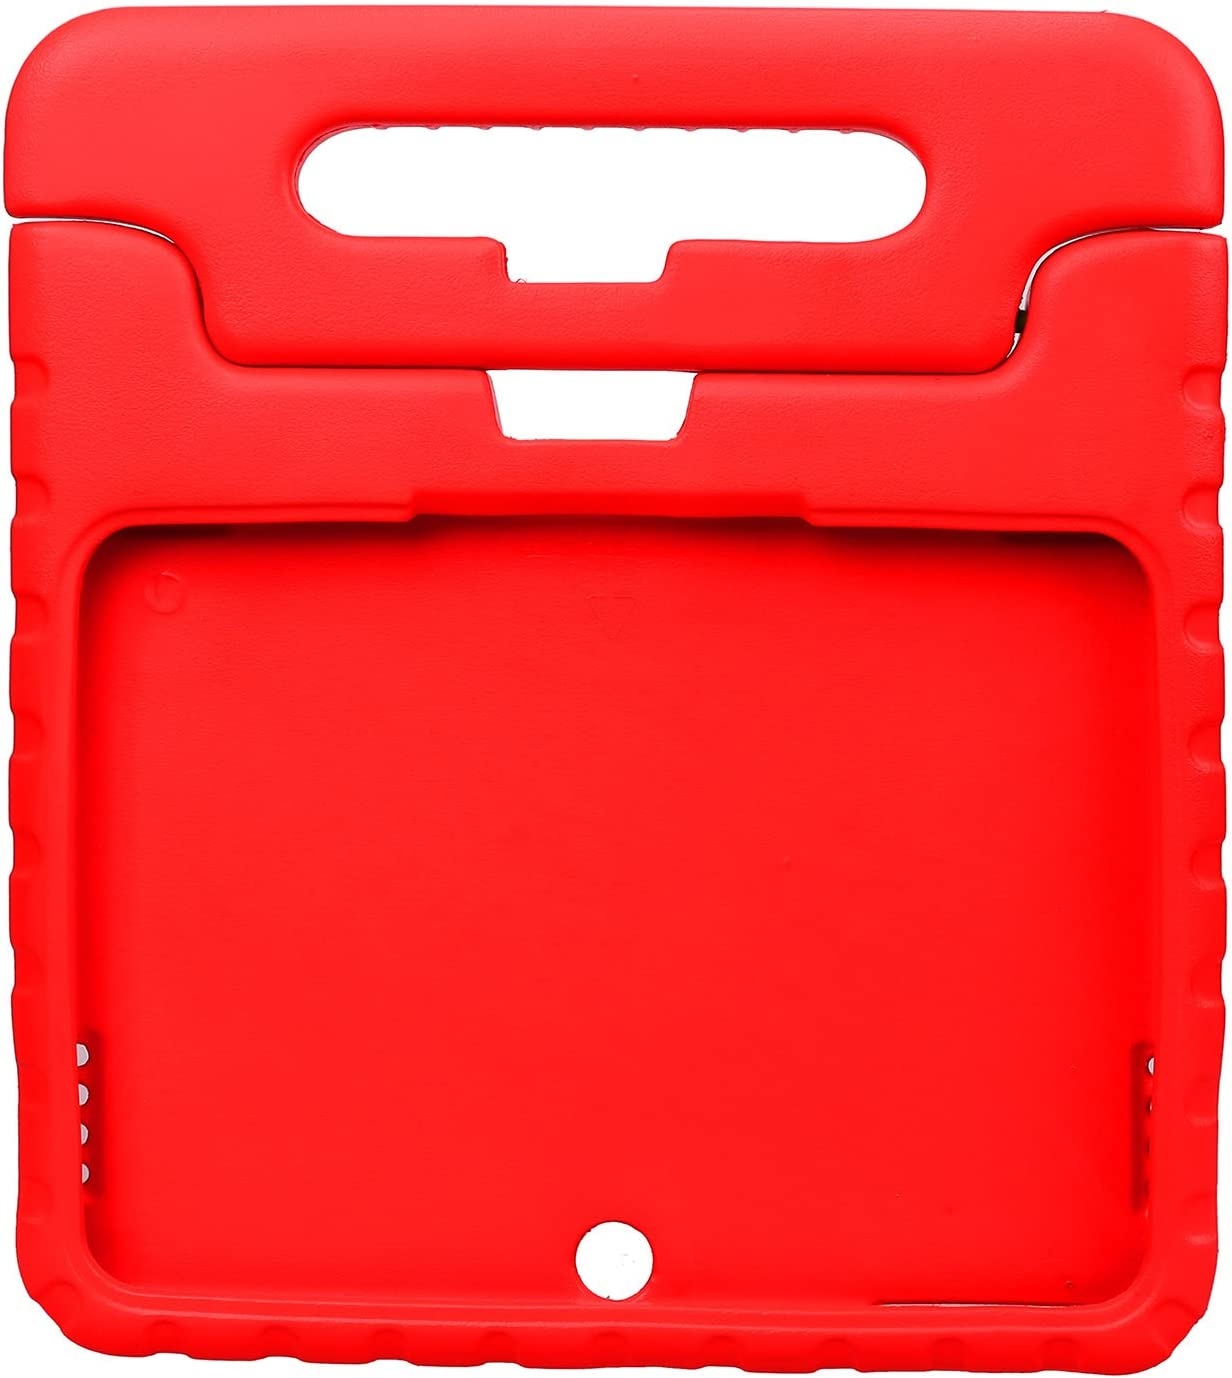 NEWSTYLE Samsung Galaxy Tab 4 10.1 Shockproof Case Light Weight Kids Case Super Protection Cover Handle Stand Case for Kids Children for Samsung Galaxy Tab 4 10.1-inch (Red)